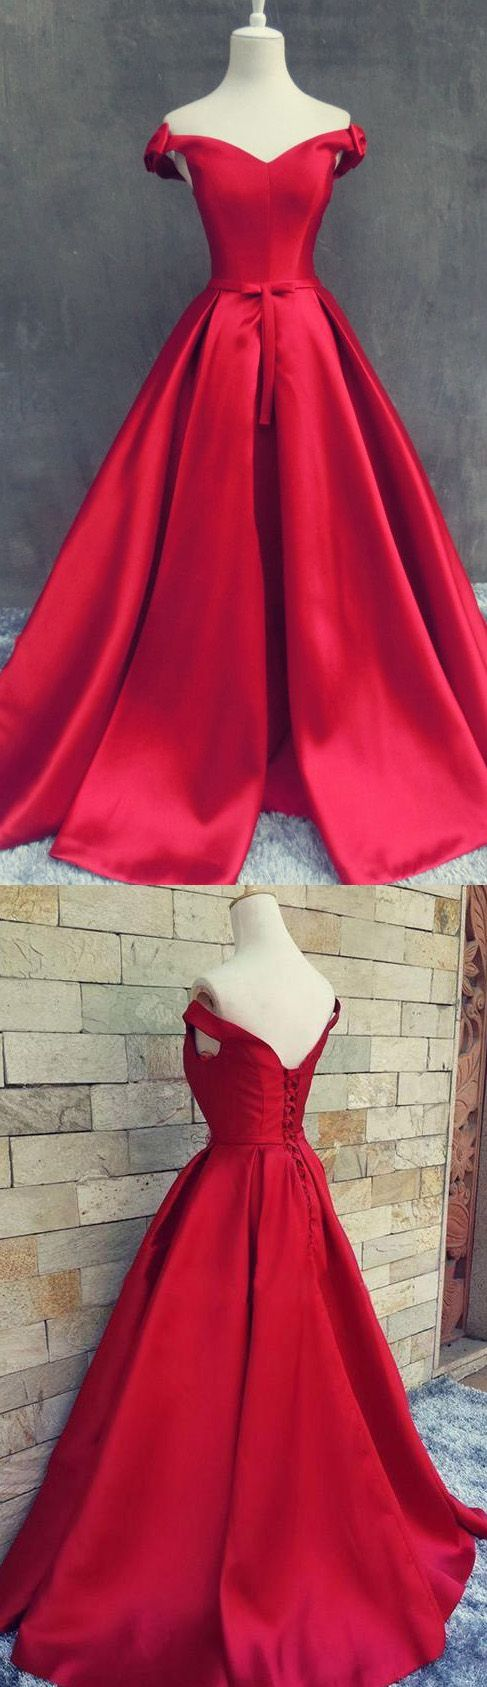 Red prom dresses short prom dresses long sleeve prom dresses long